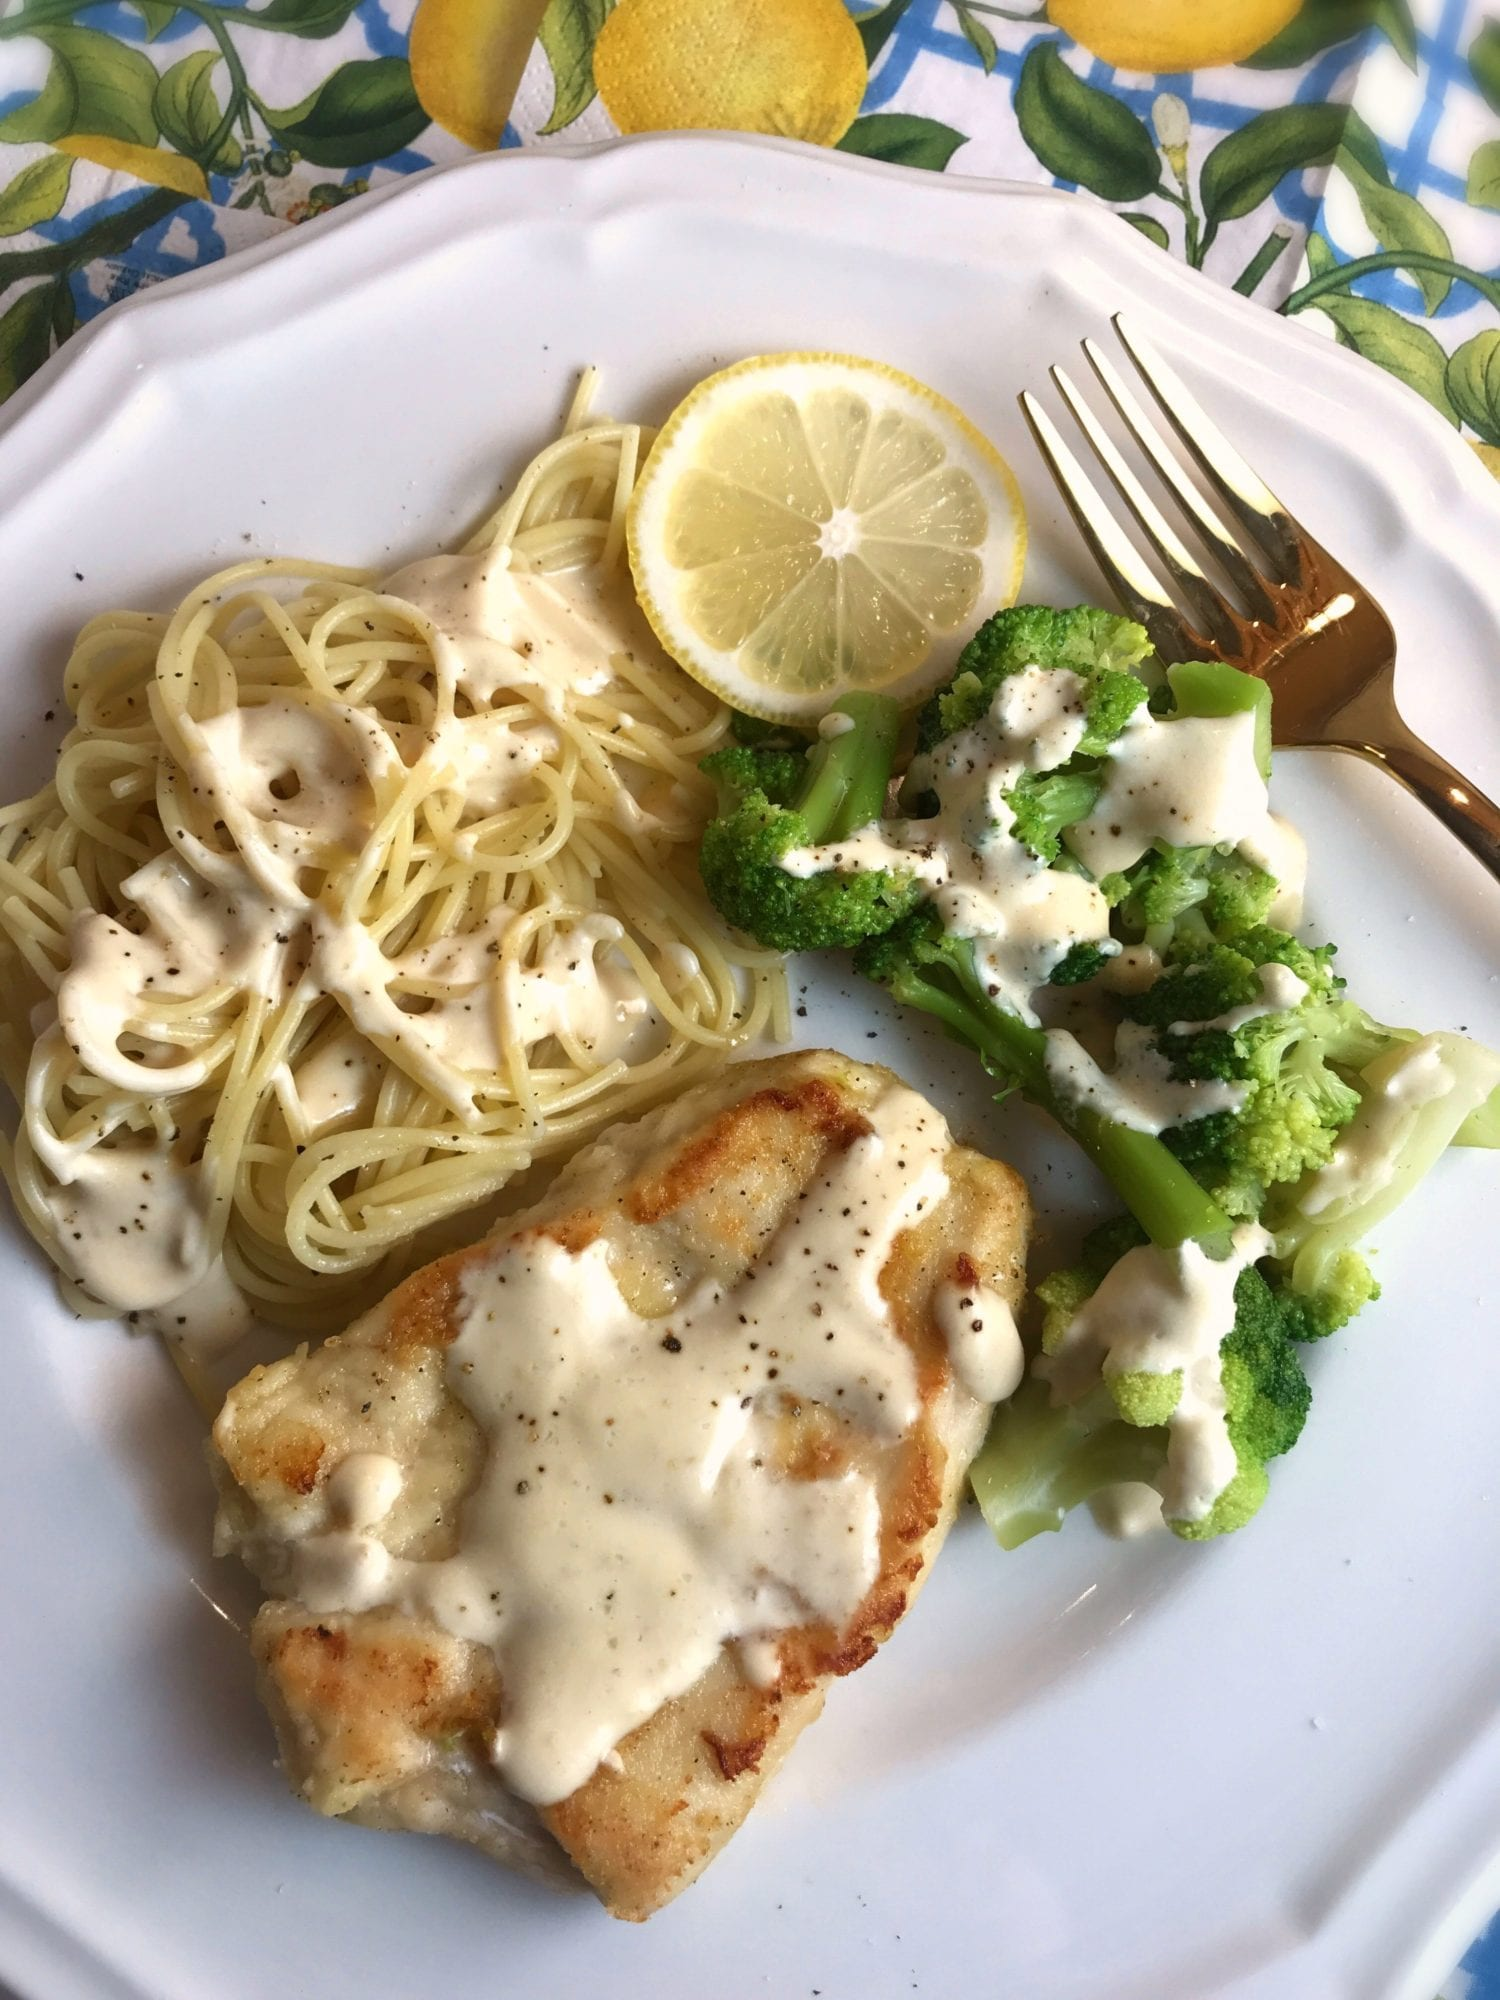 Weight Watchers Friendly Meal Plan With Freestyle Smart